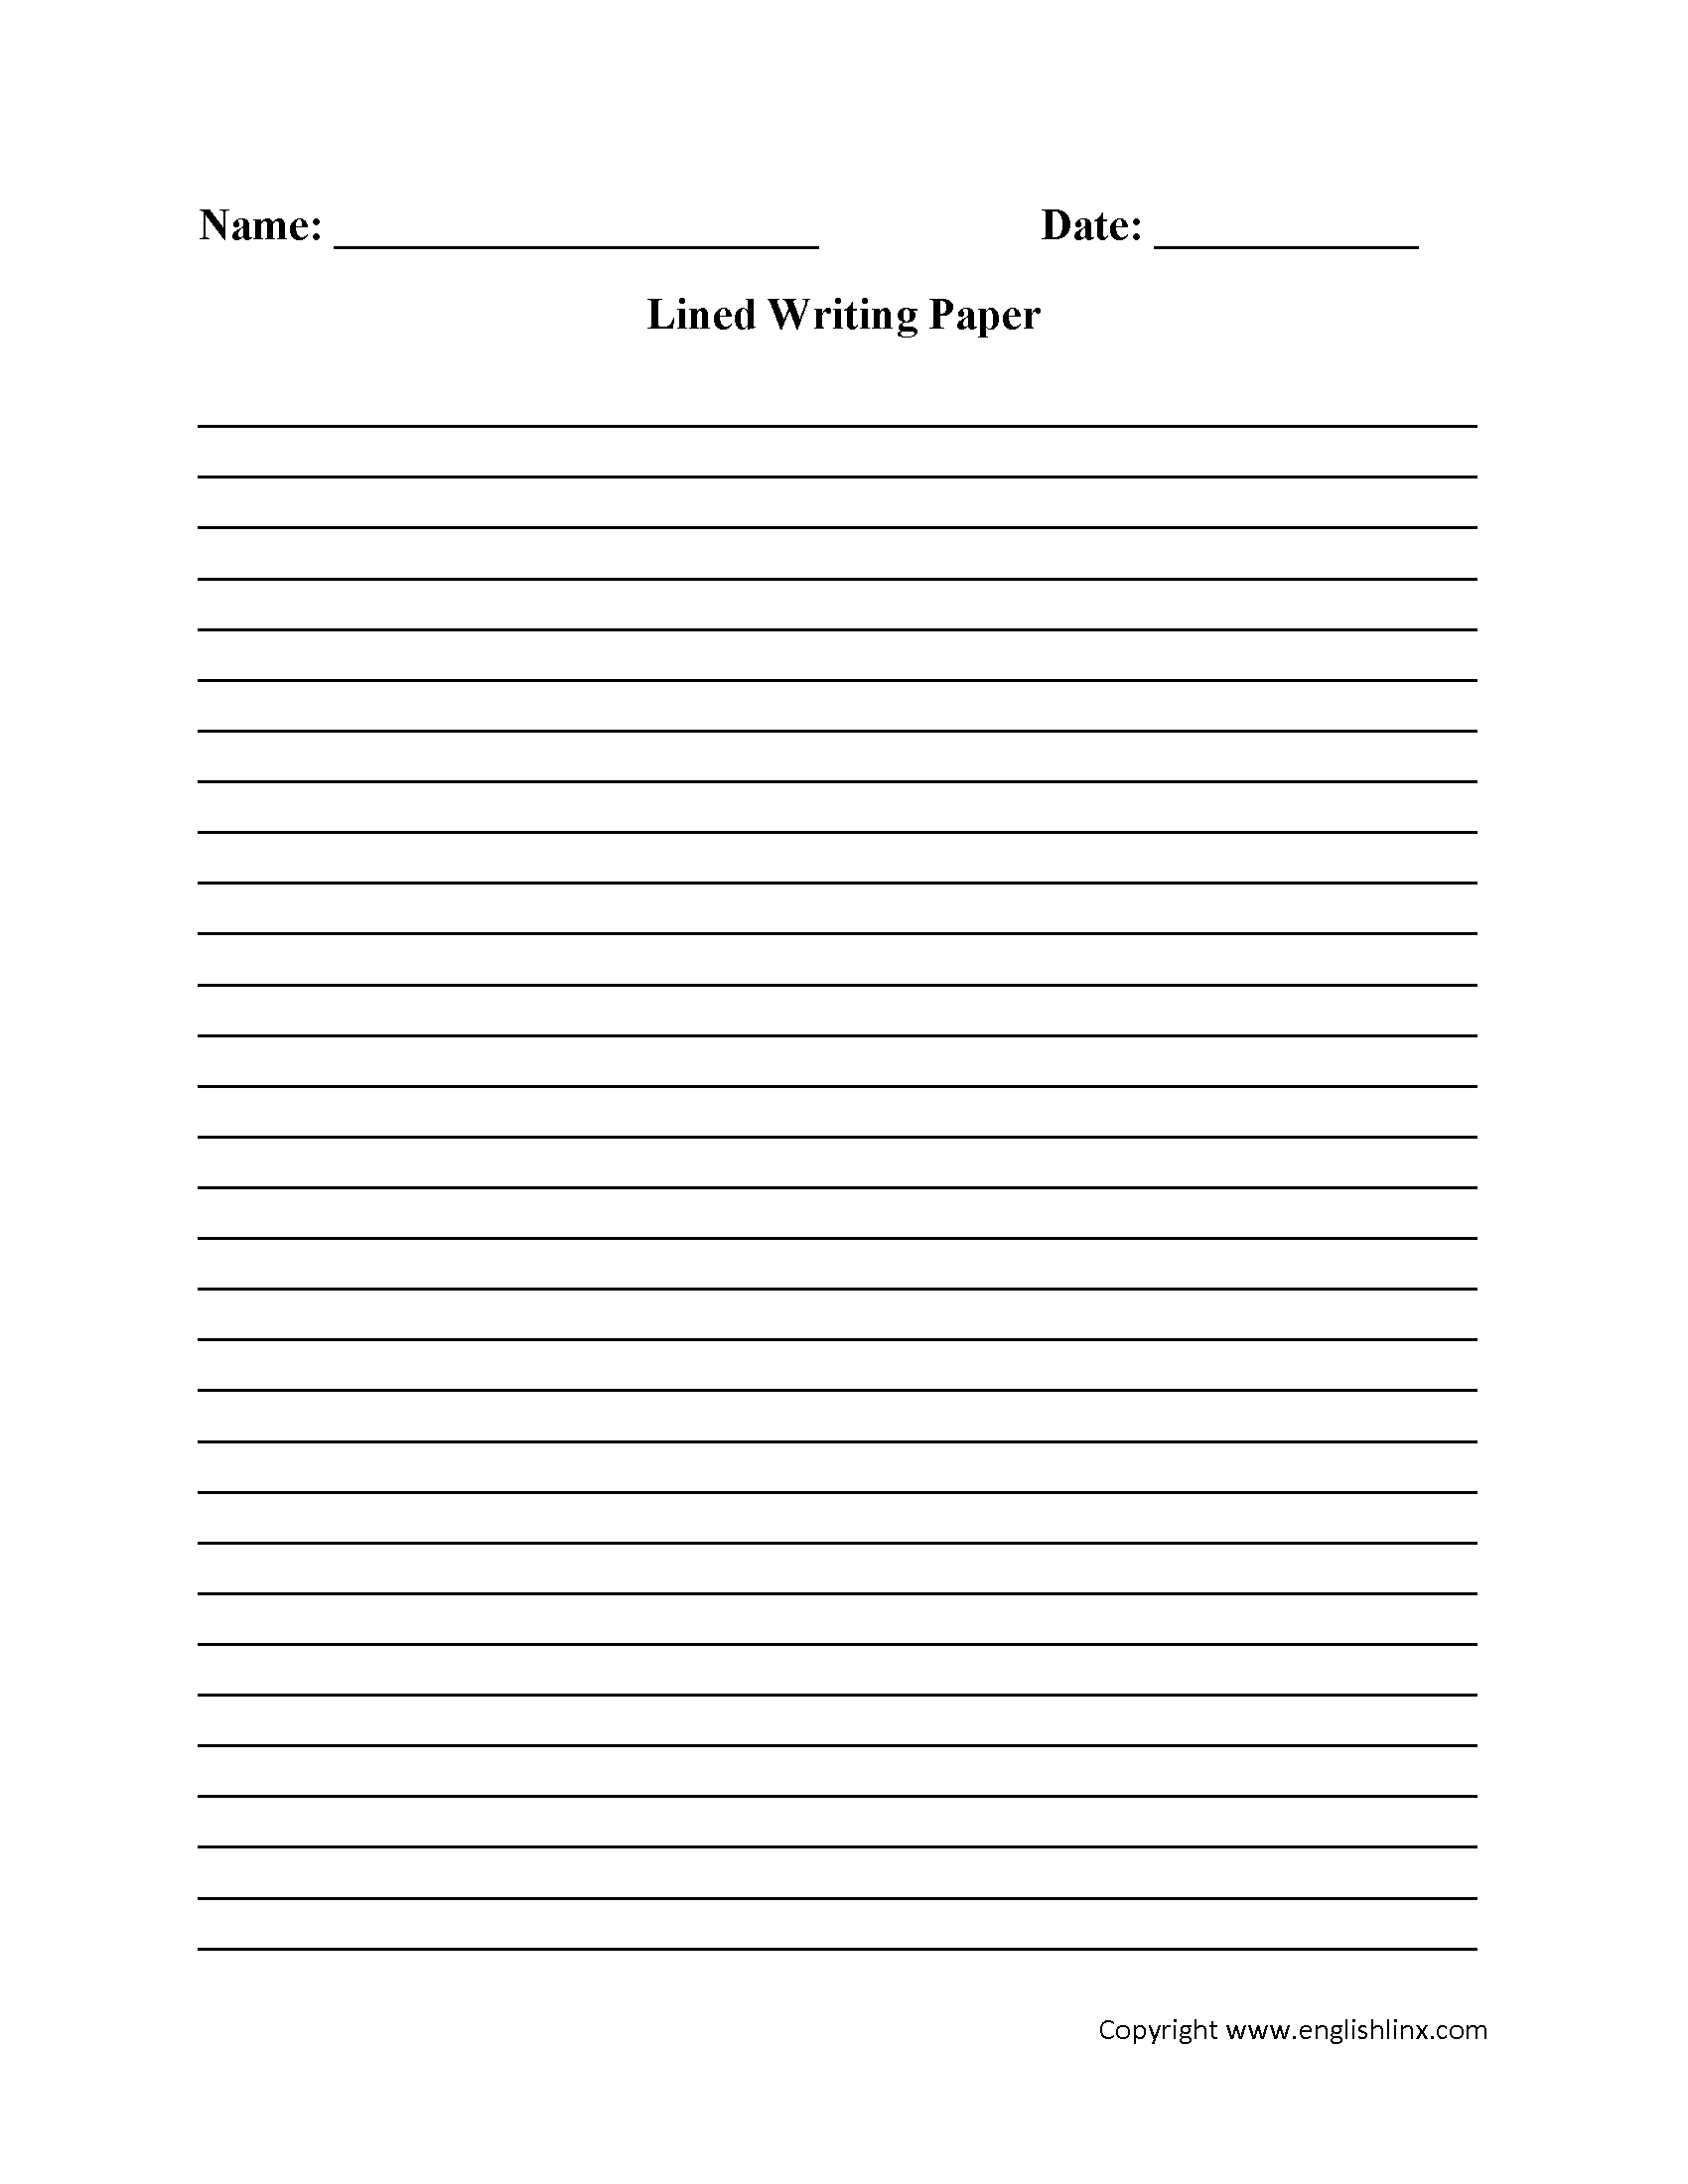 Writing Worksheets   Lined Writing Paper Worksheets - Free Printable Lined Handwriting Paper